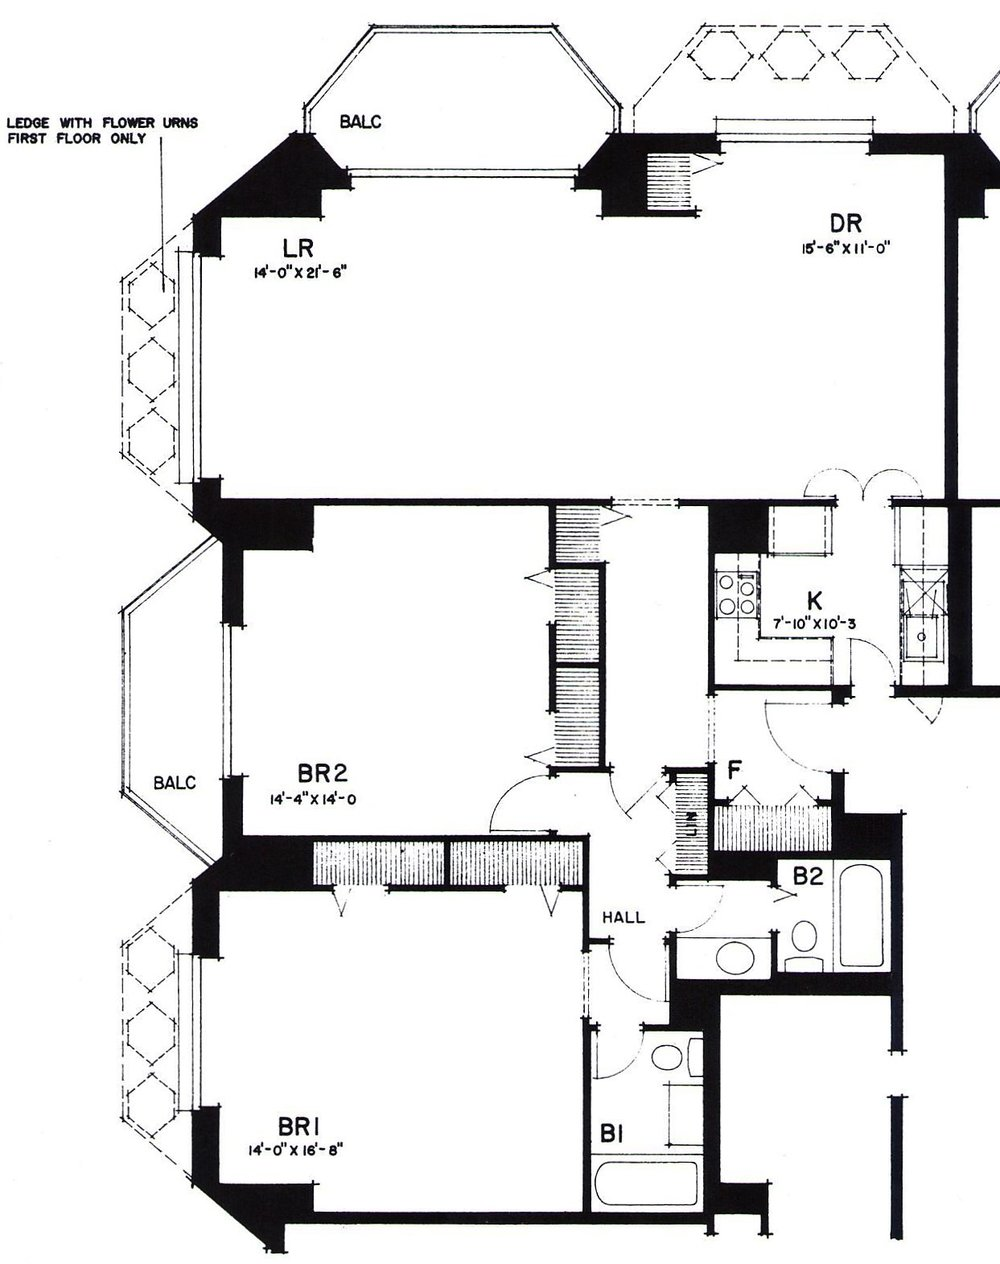 Two bedroom (Typical)